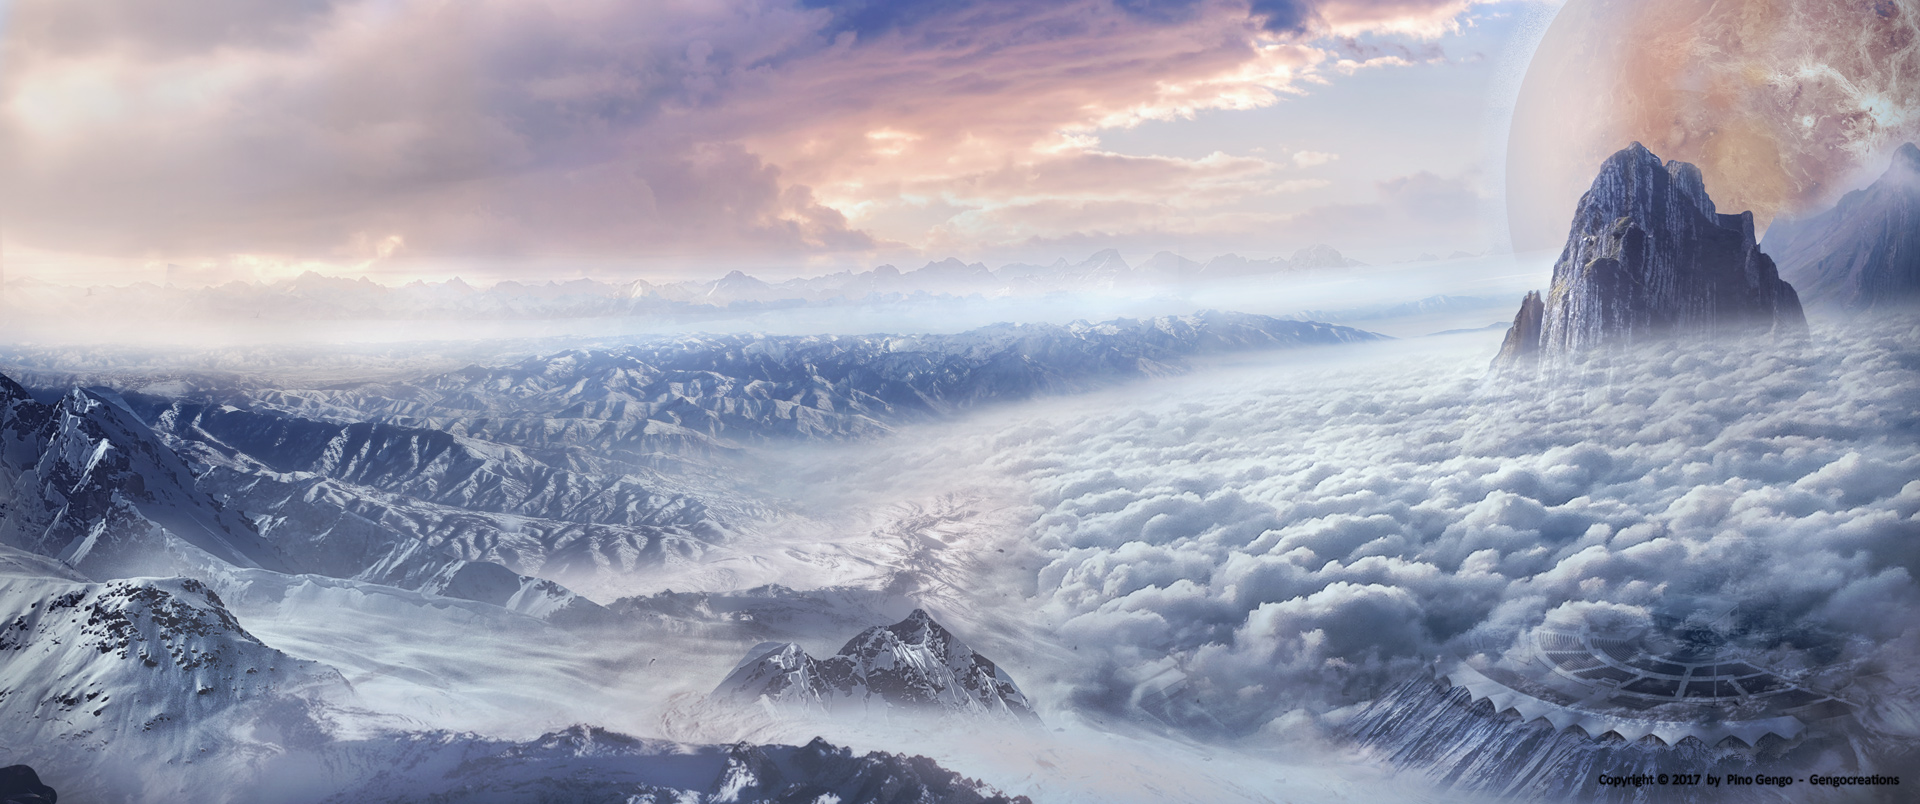 Pino Gengo: Sky Landscape - Matte Painting